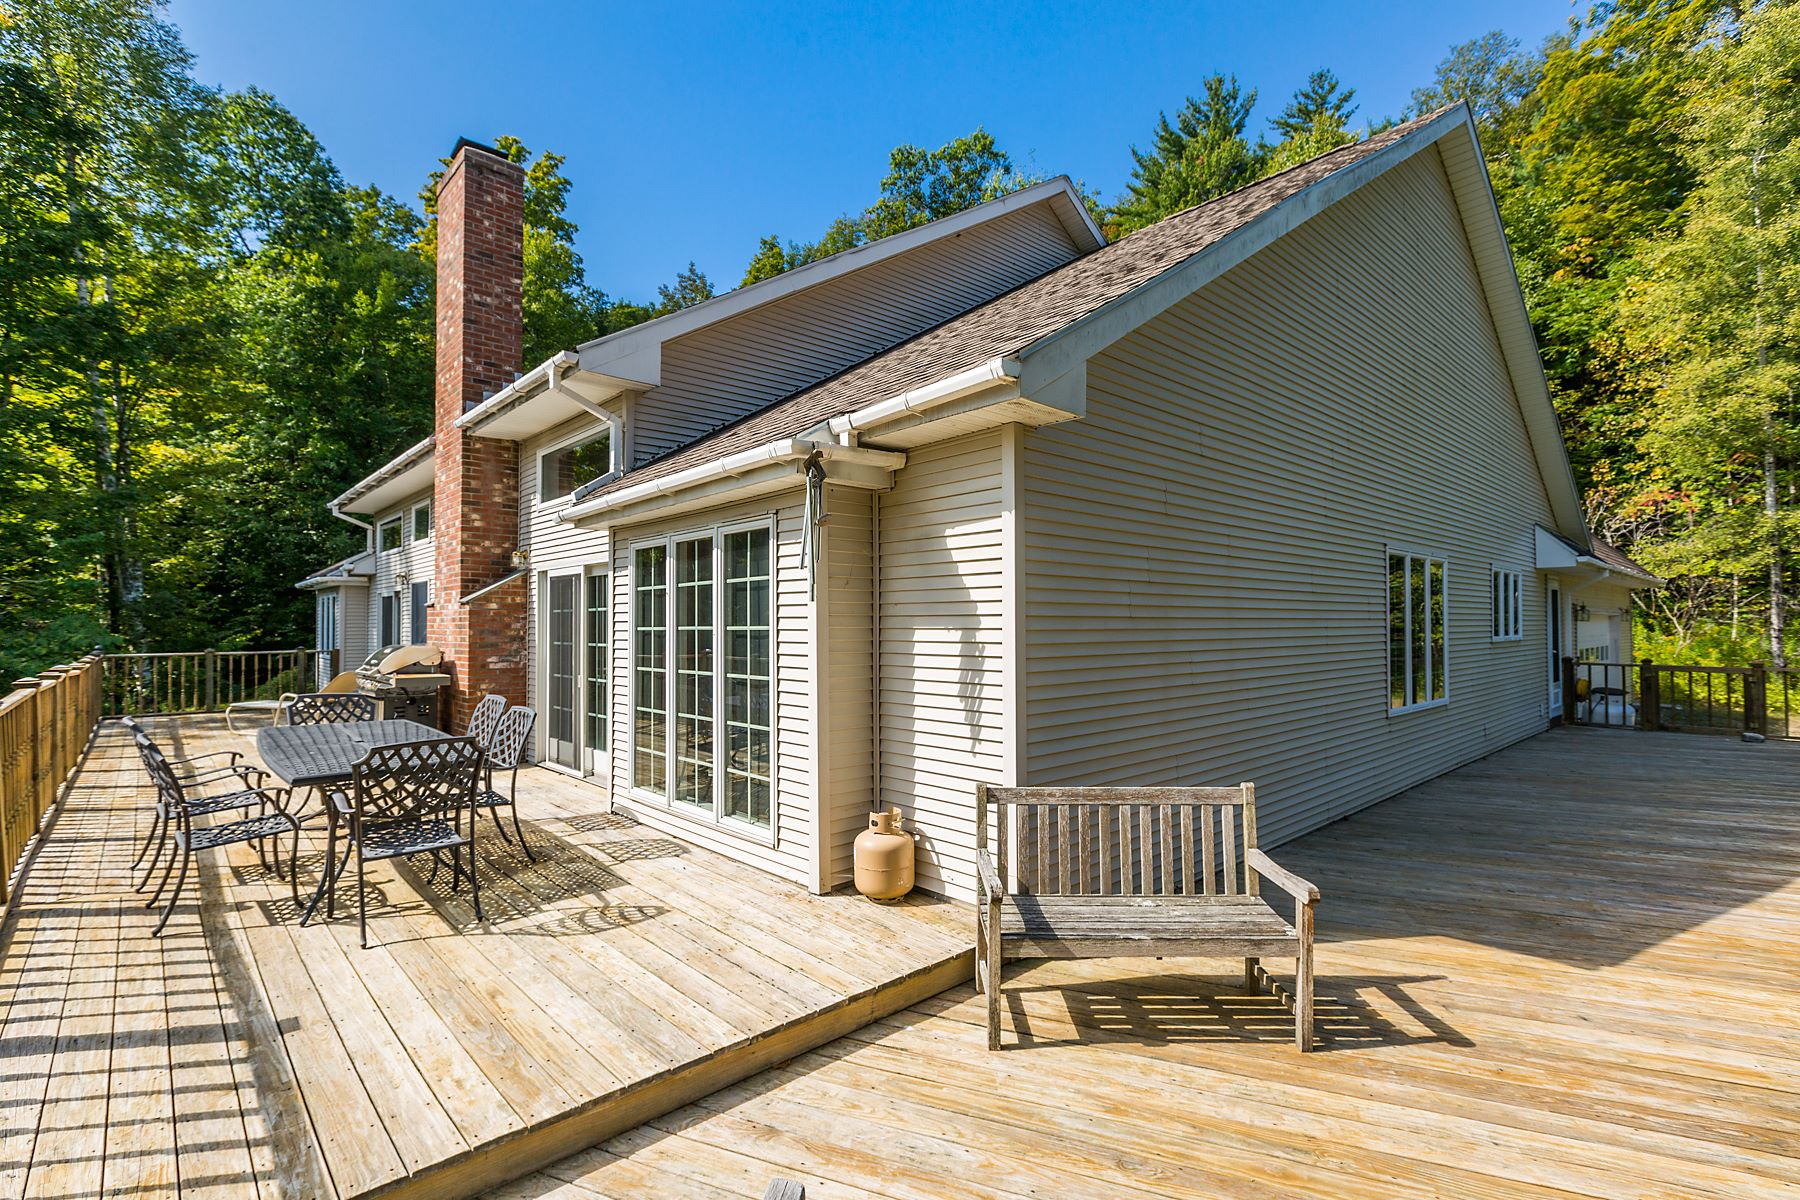 Single Family Homes for Sale at 206 Highland Woods Drive, Shaftsbury 206 Highland Woods Dr Shaftsbury, Vermont 05262 United States